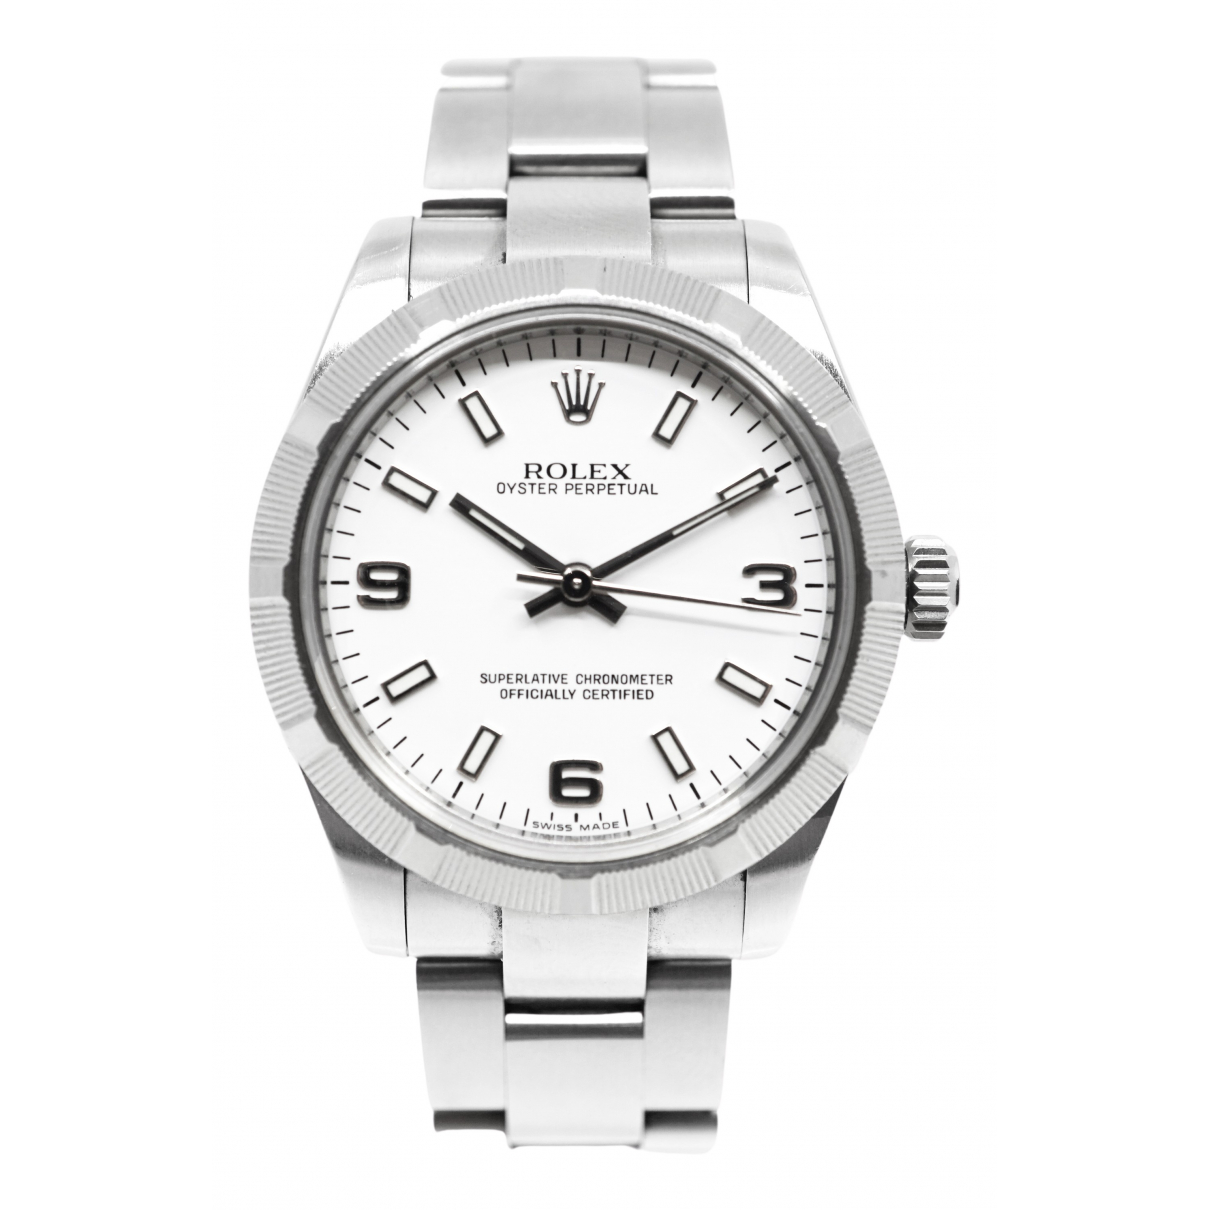 Rolex Oyster Perpetual 31mm Uhr in  Silber Silber